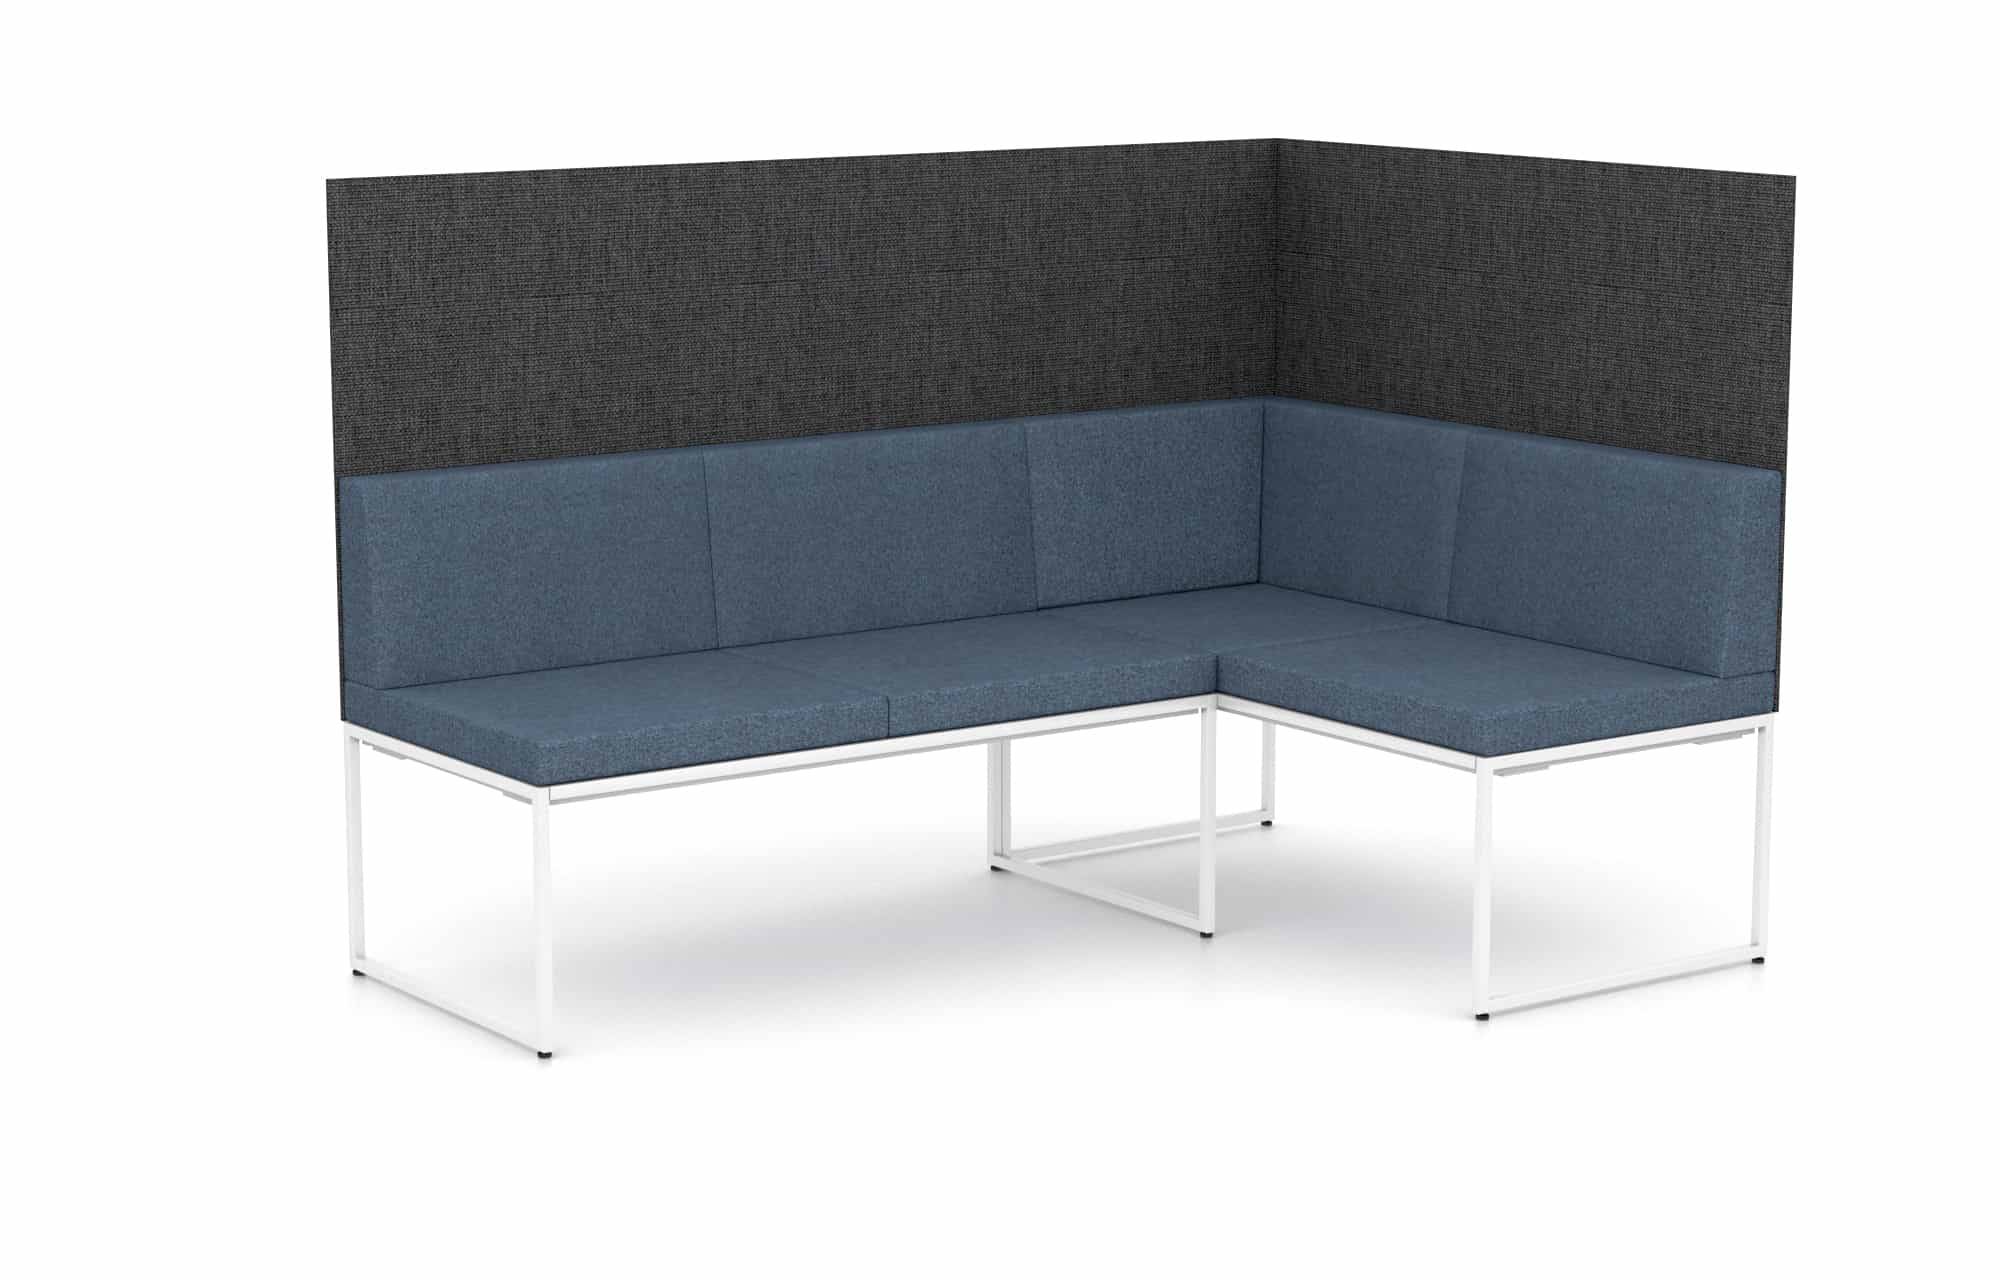 Super Calypso Benches Ottomans Cal 8400 Hickory Contract Ibusinesslaw Wood Chair Design Ideas Ibusinesslaworg